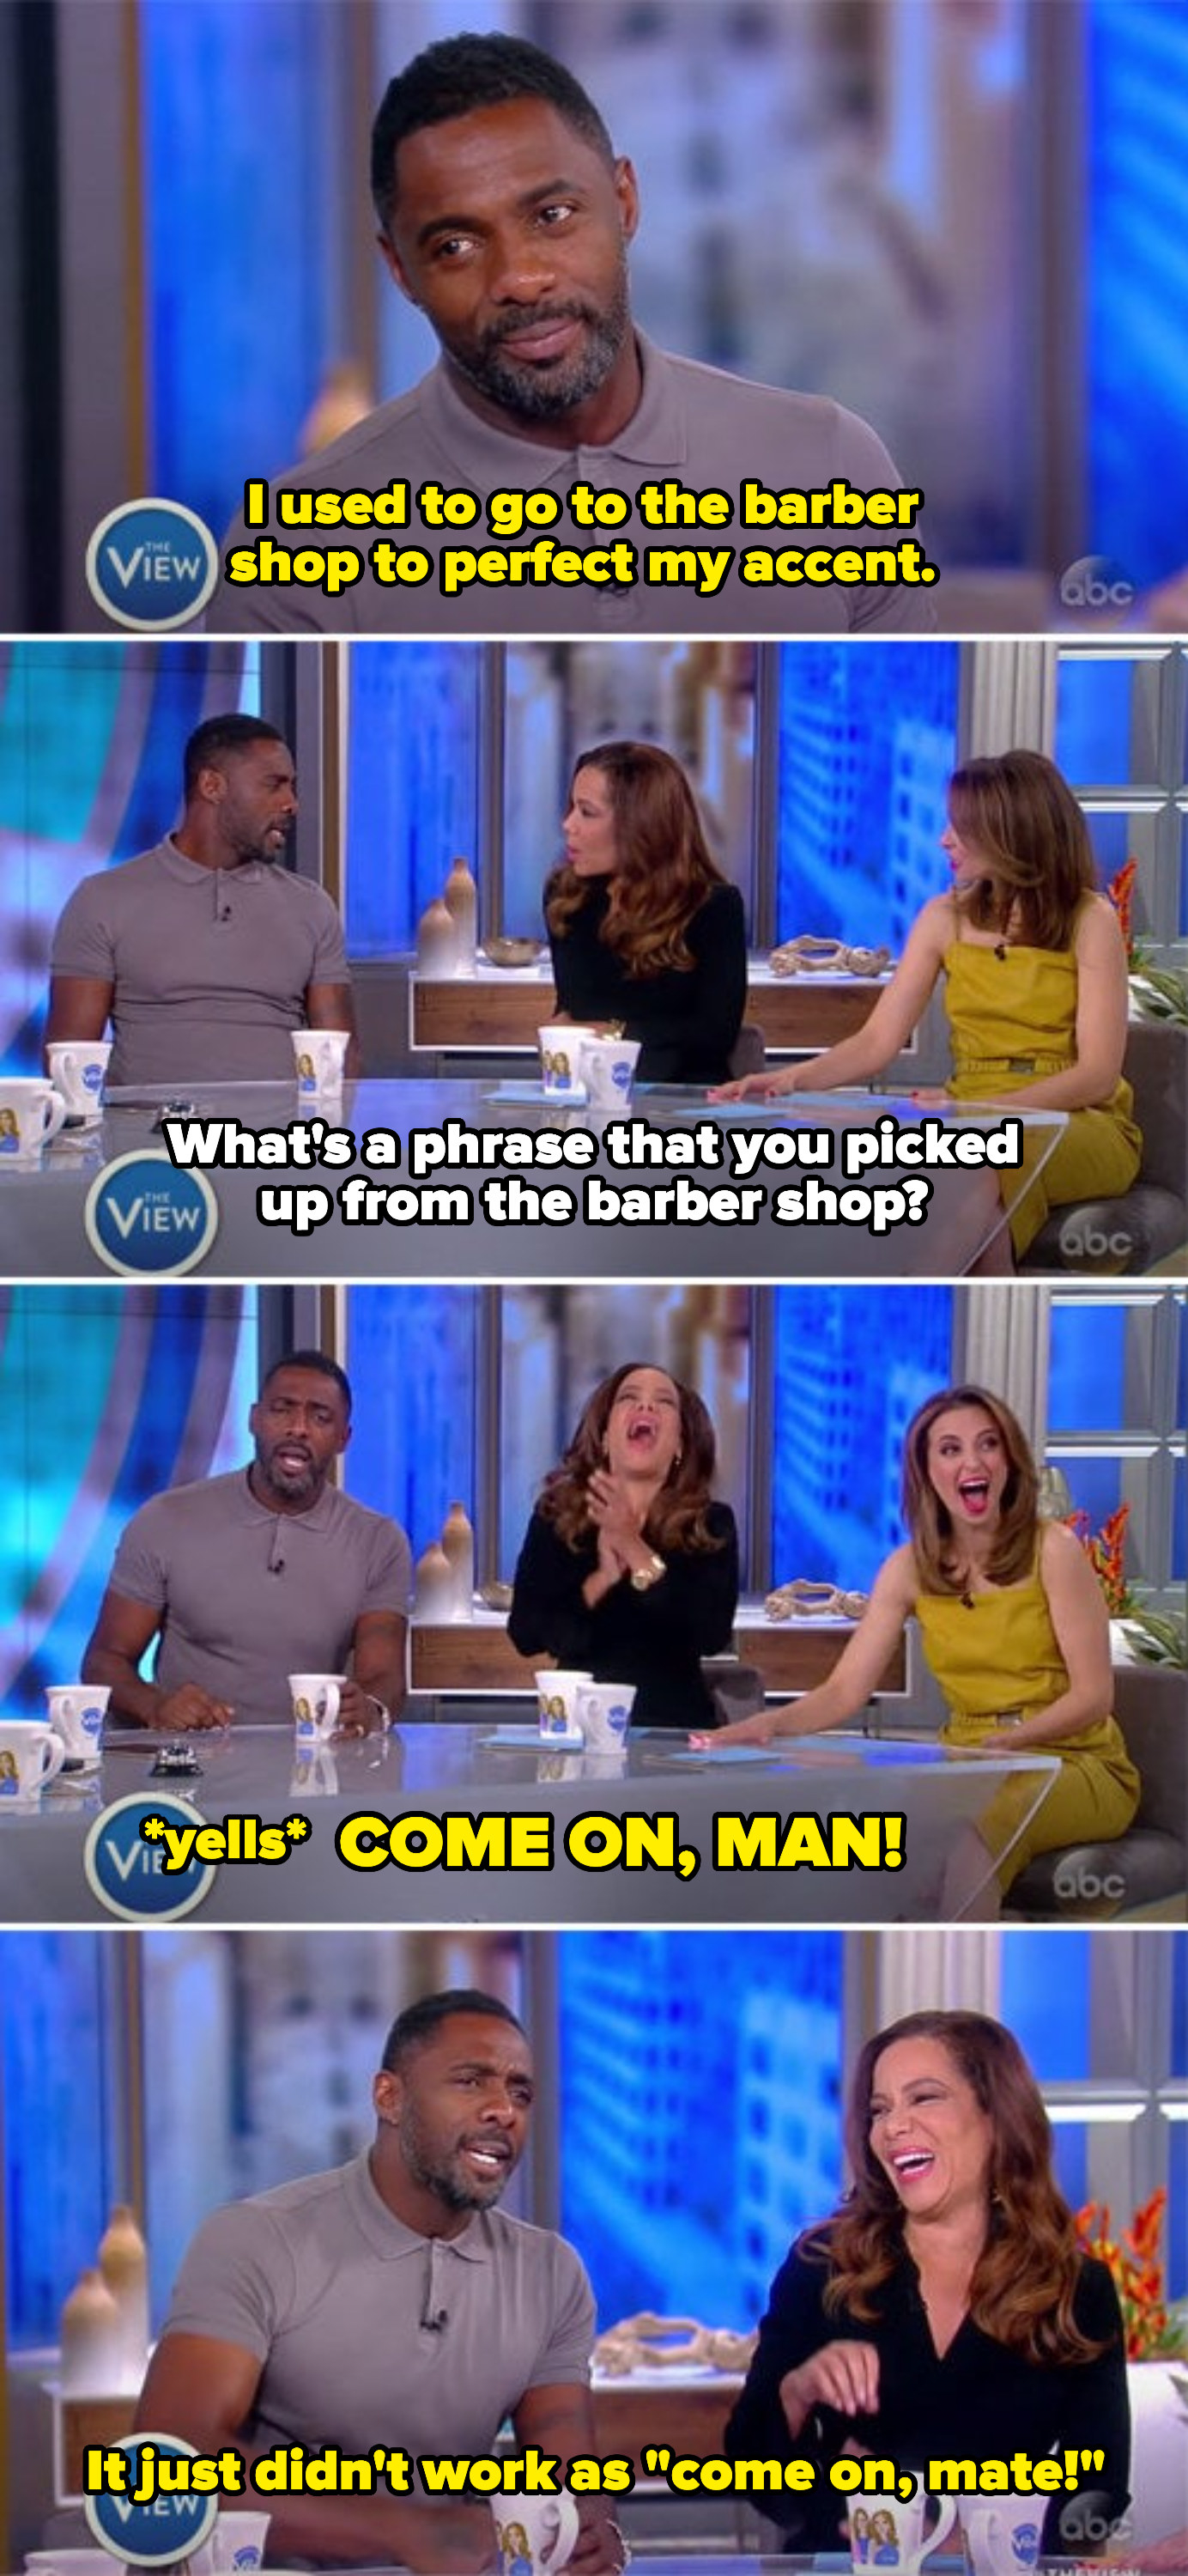 """Idris explaining he learned his American accent in a barbershop, yelling """"come on man"""" as a phrase he picked up, and saying """"come on mate"""" didn't work as well"""